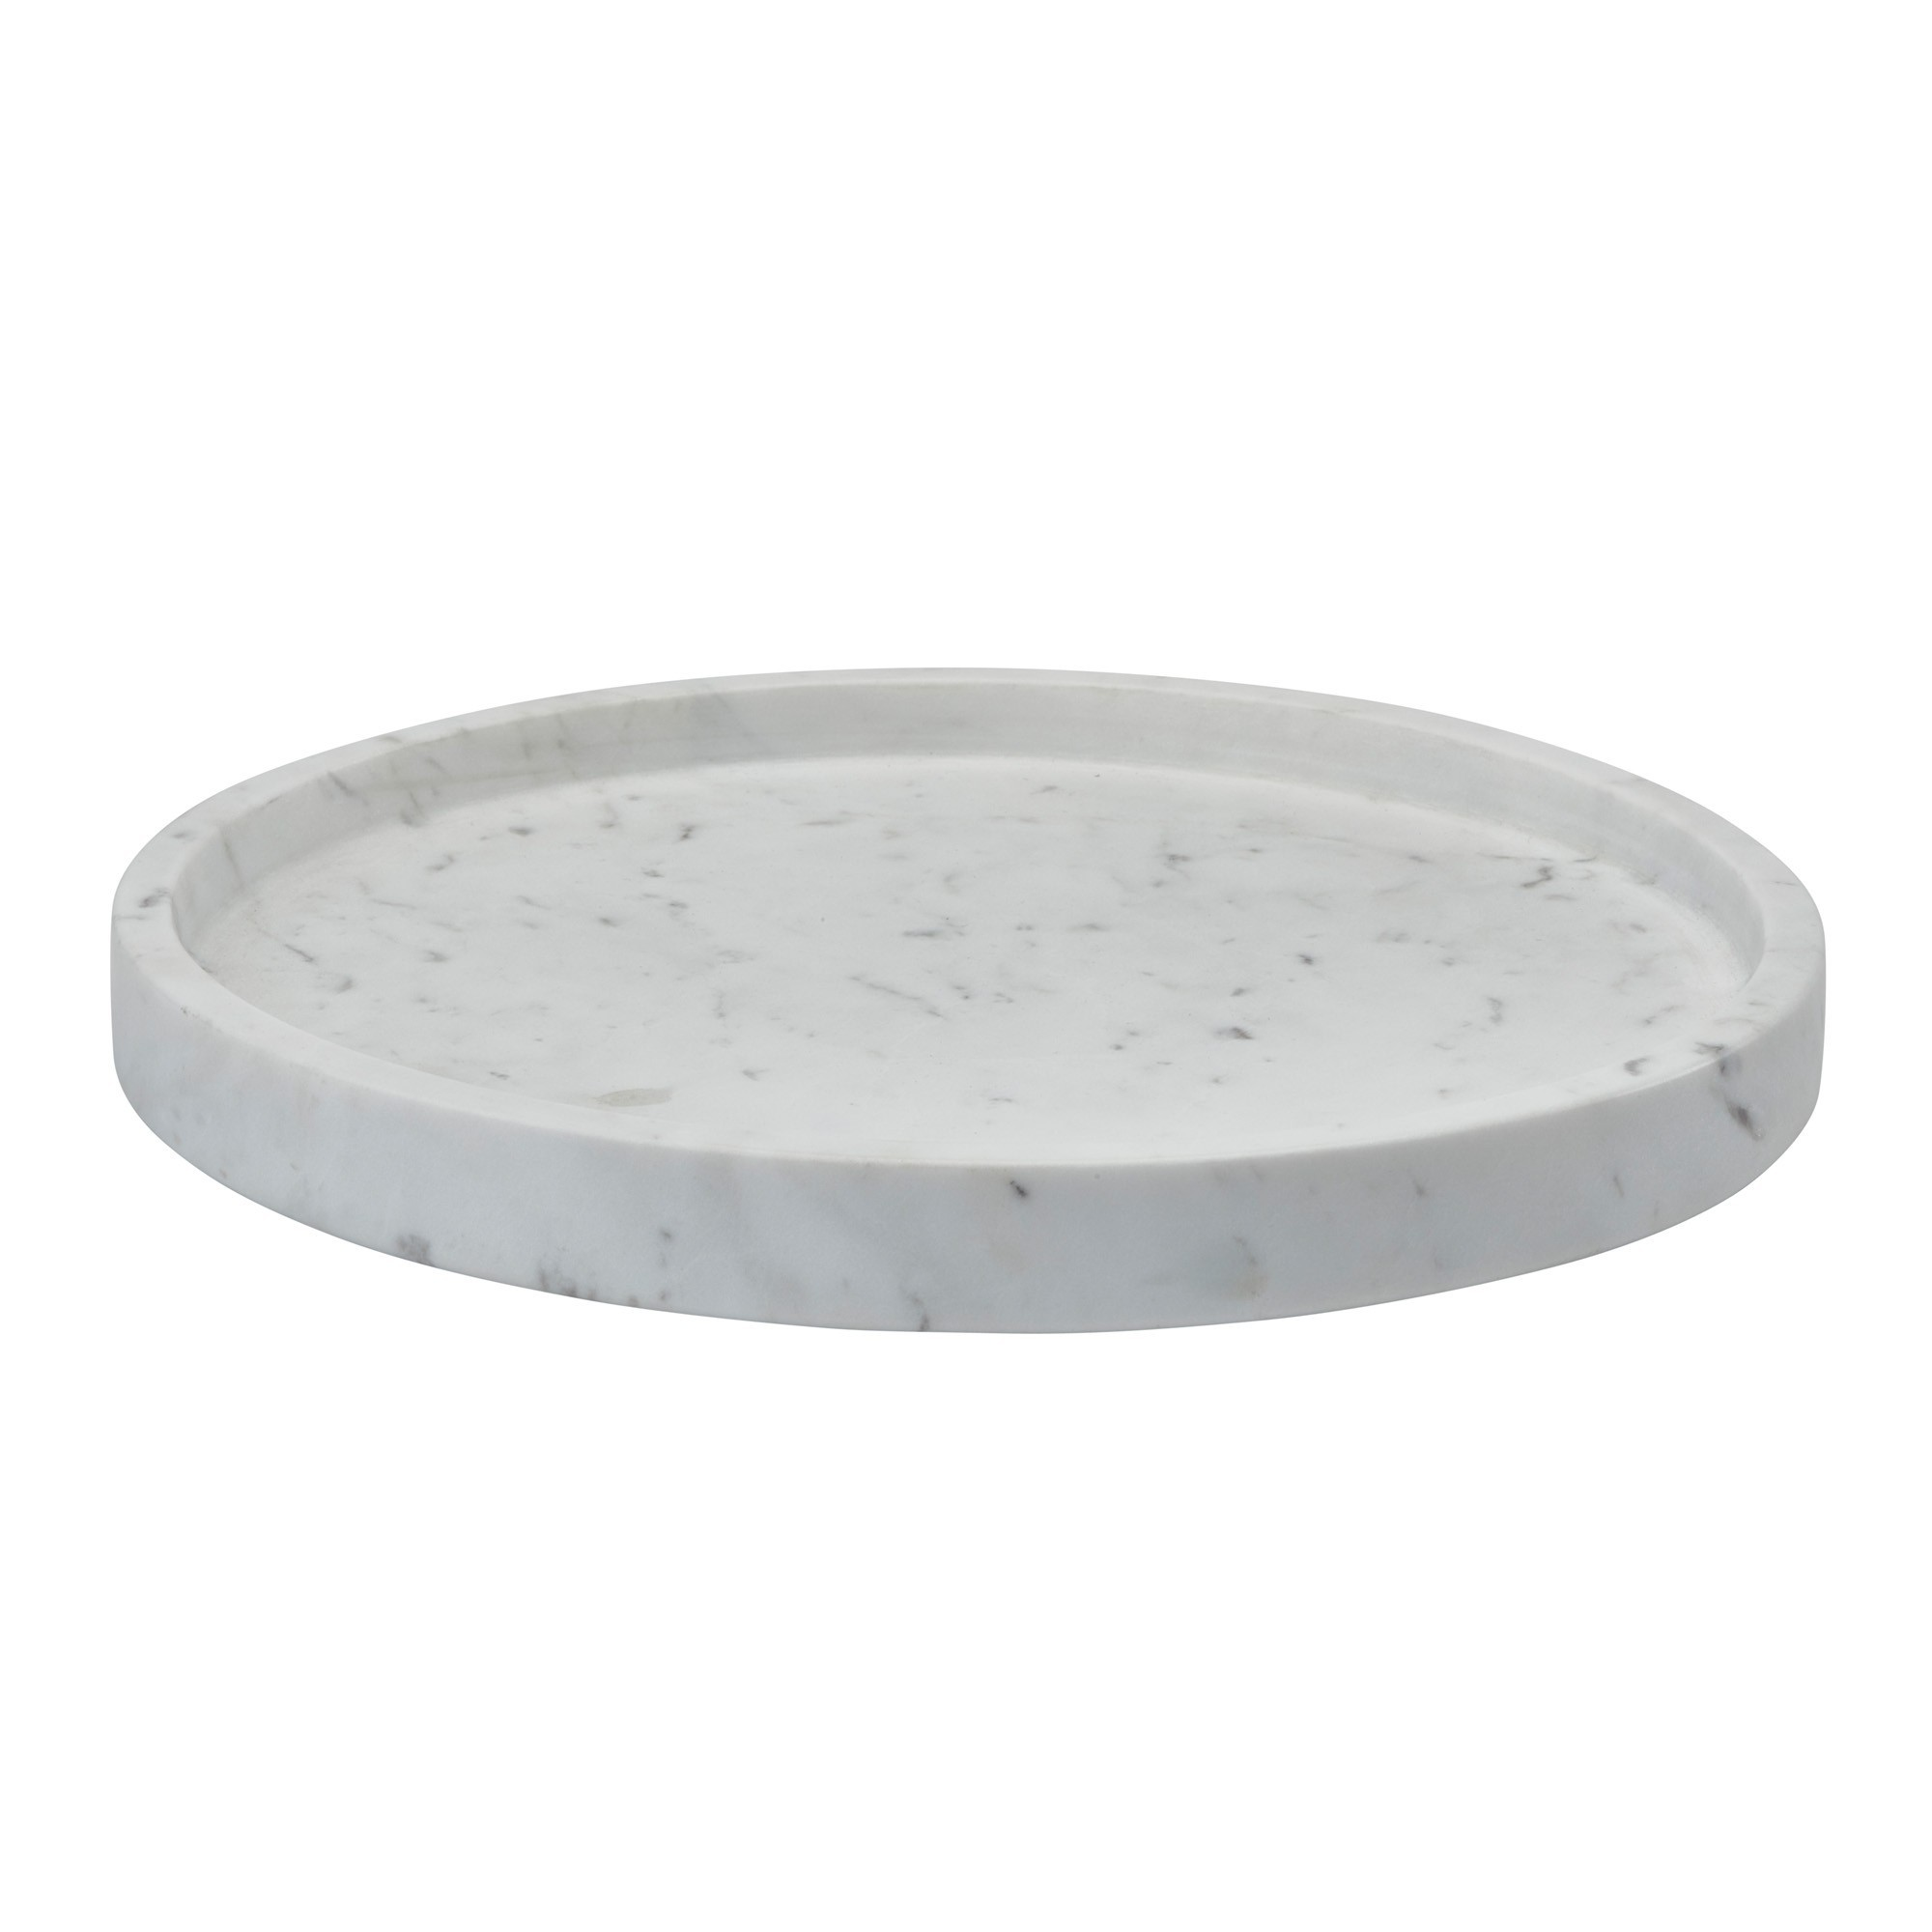 Aquanova Hammam Natural Stone Round Tray, White